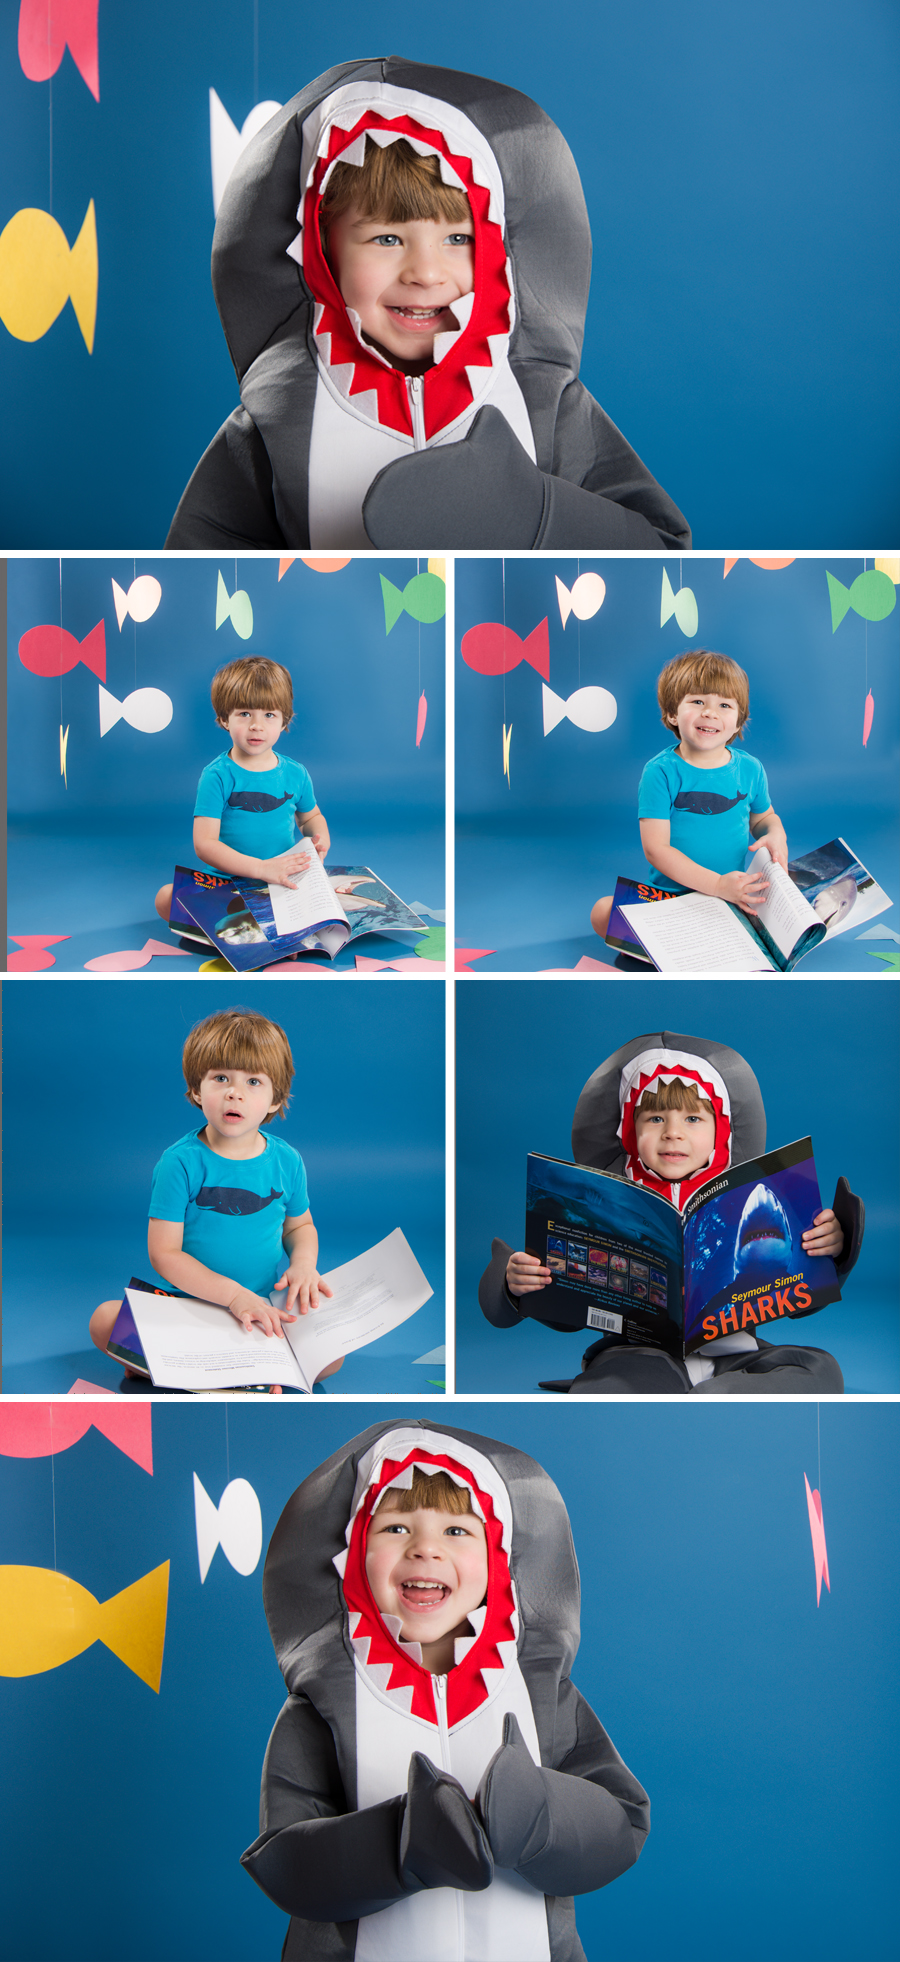 I love portraits and photographs with a sense of humor.  There is something silly about a toddler in a shark costume, reading a shark book, right?